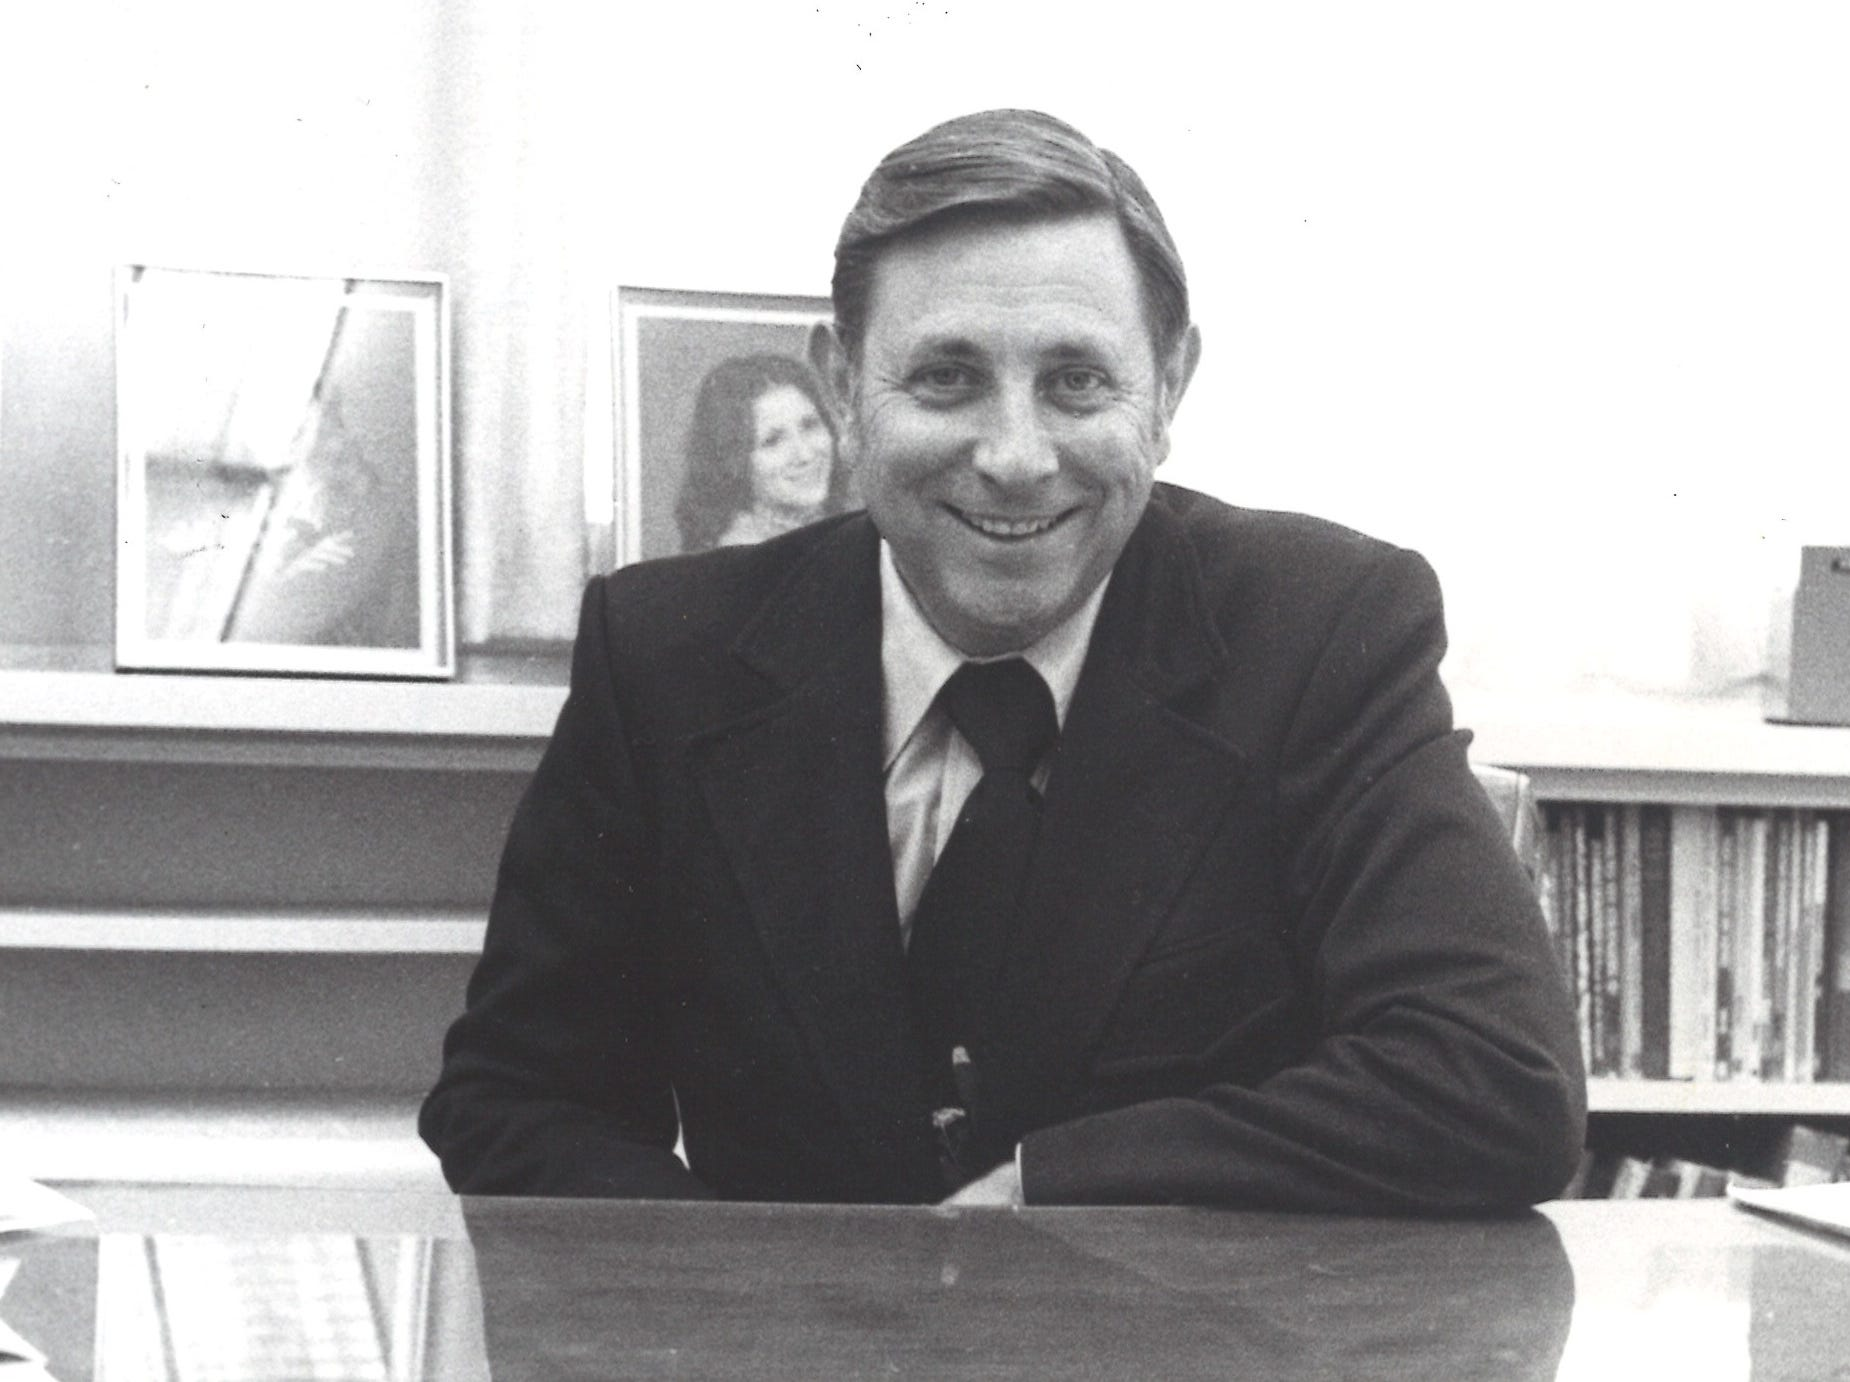 Pastor John Laida in his office at First Baptist Church.